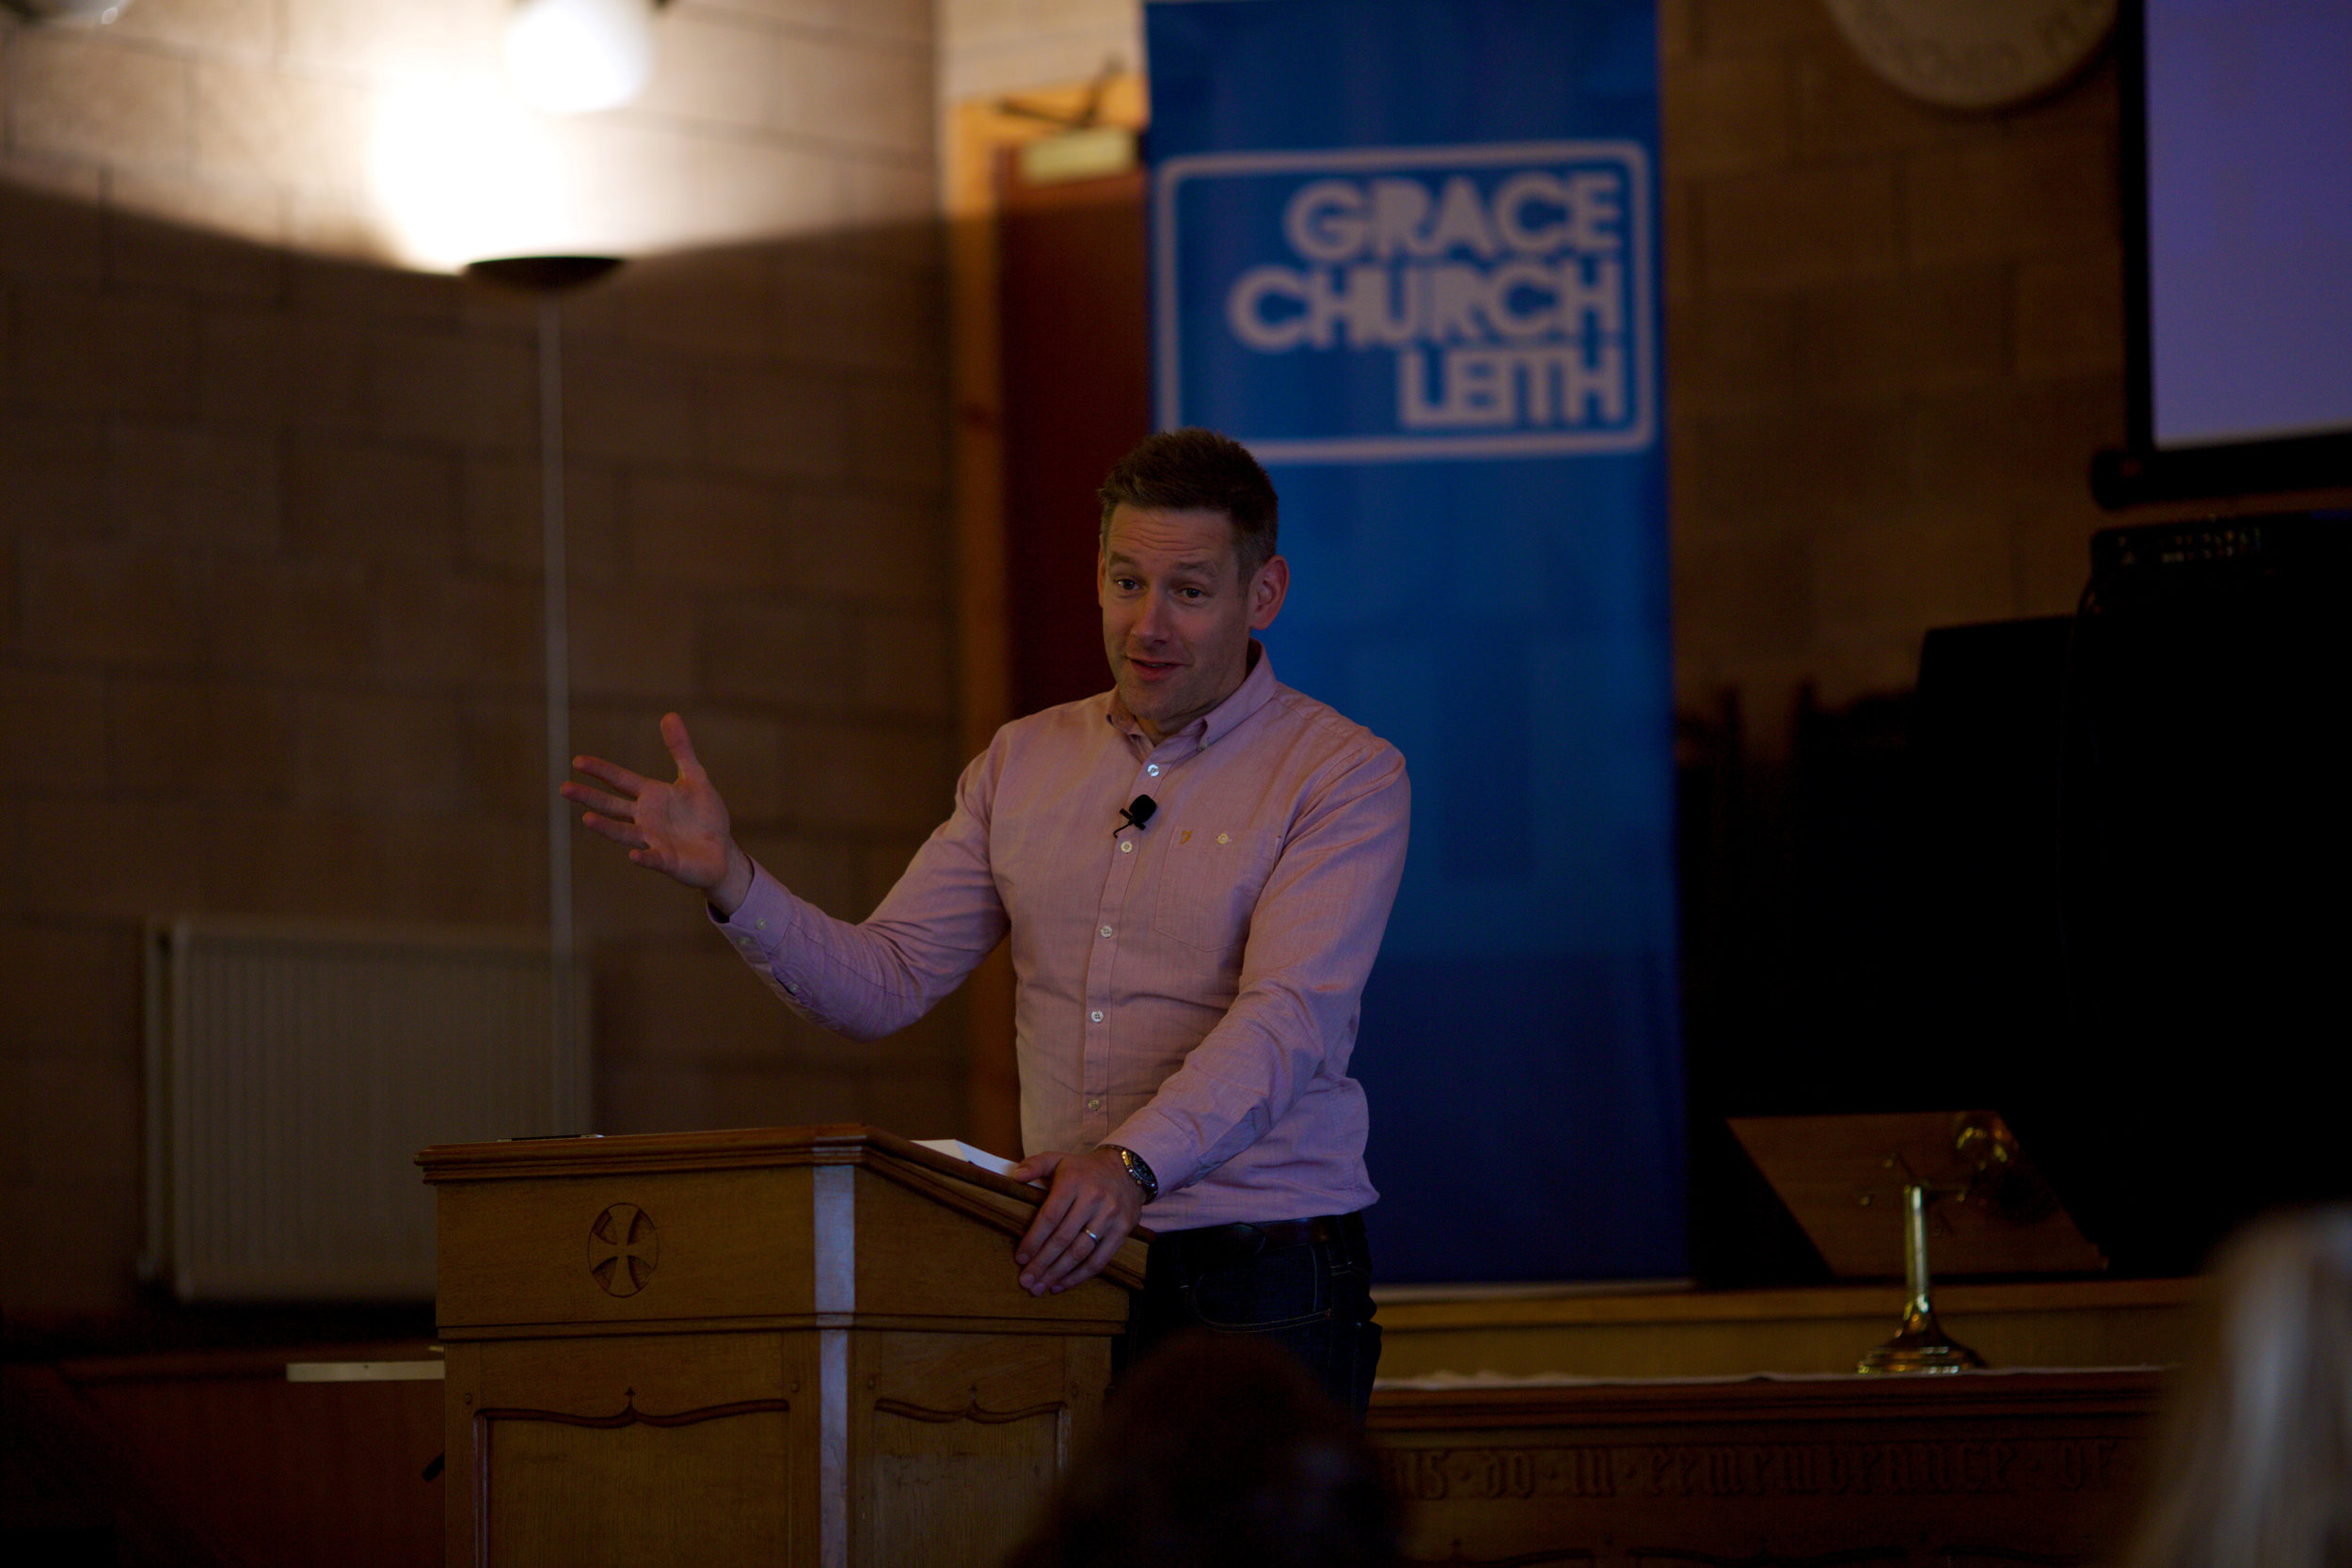 sermon talk edinburgh